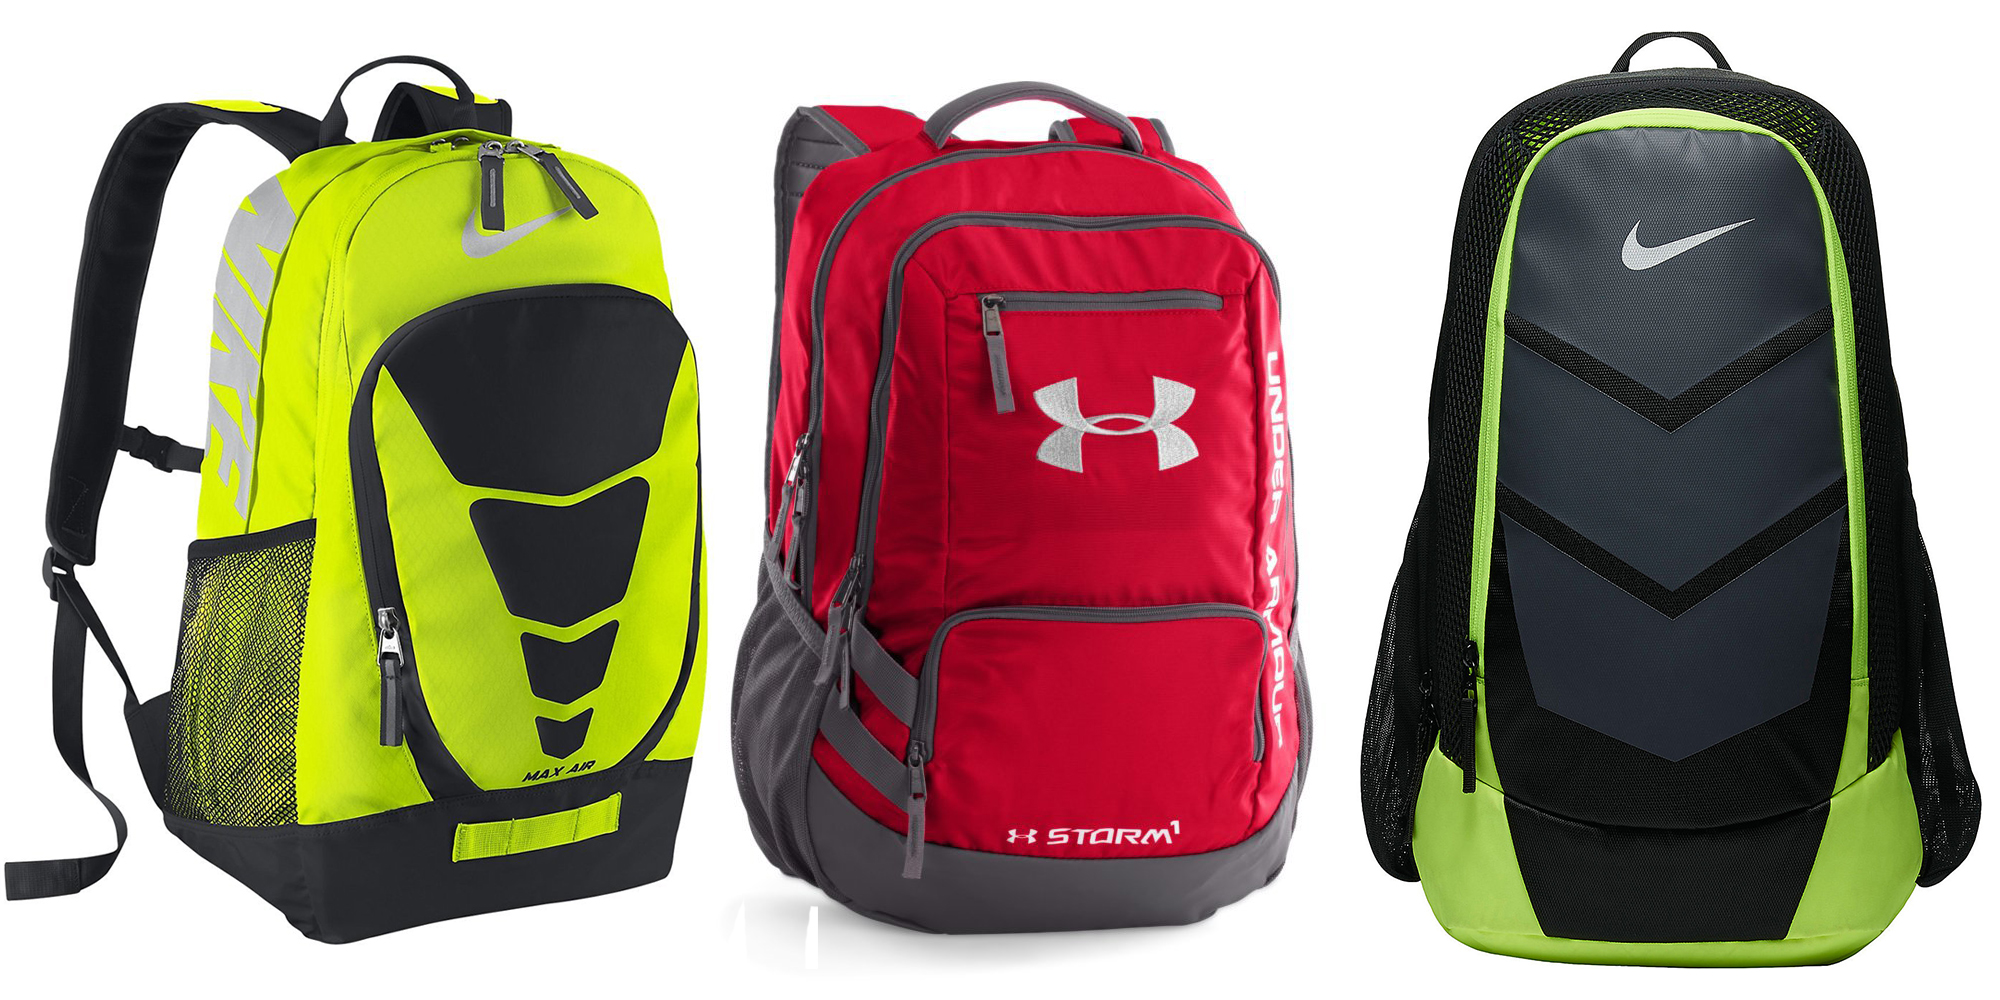 Your choice of Nike and Under Armour Sport